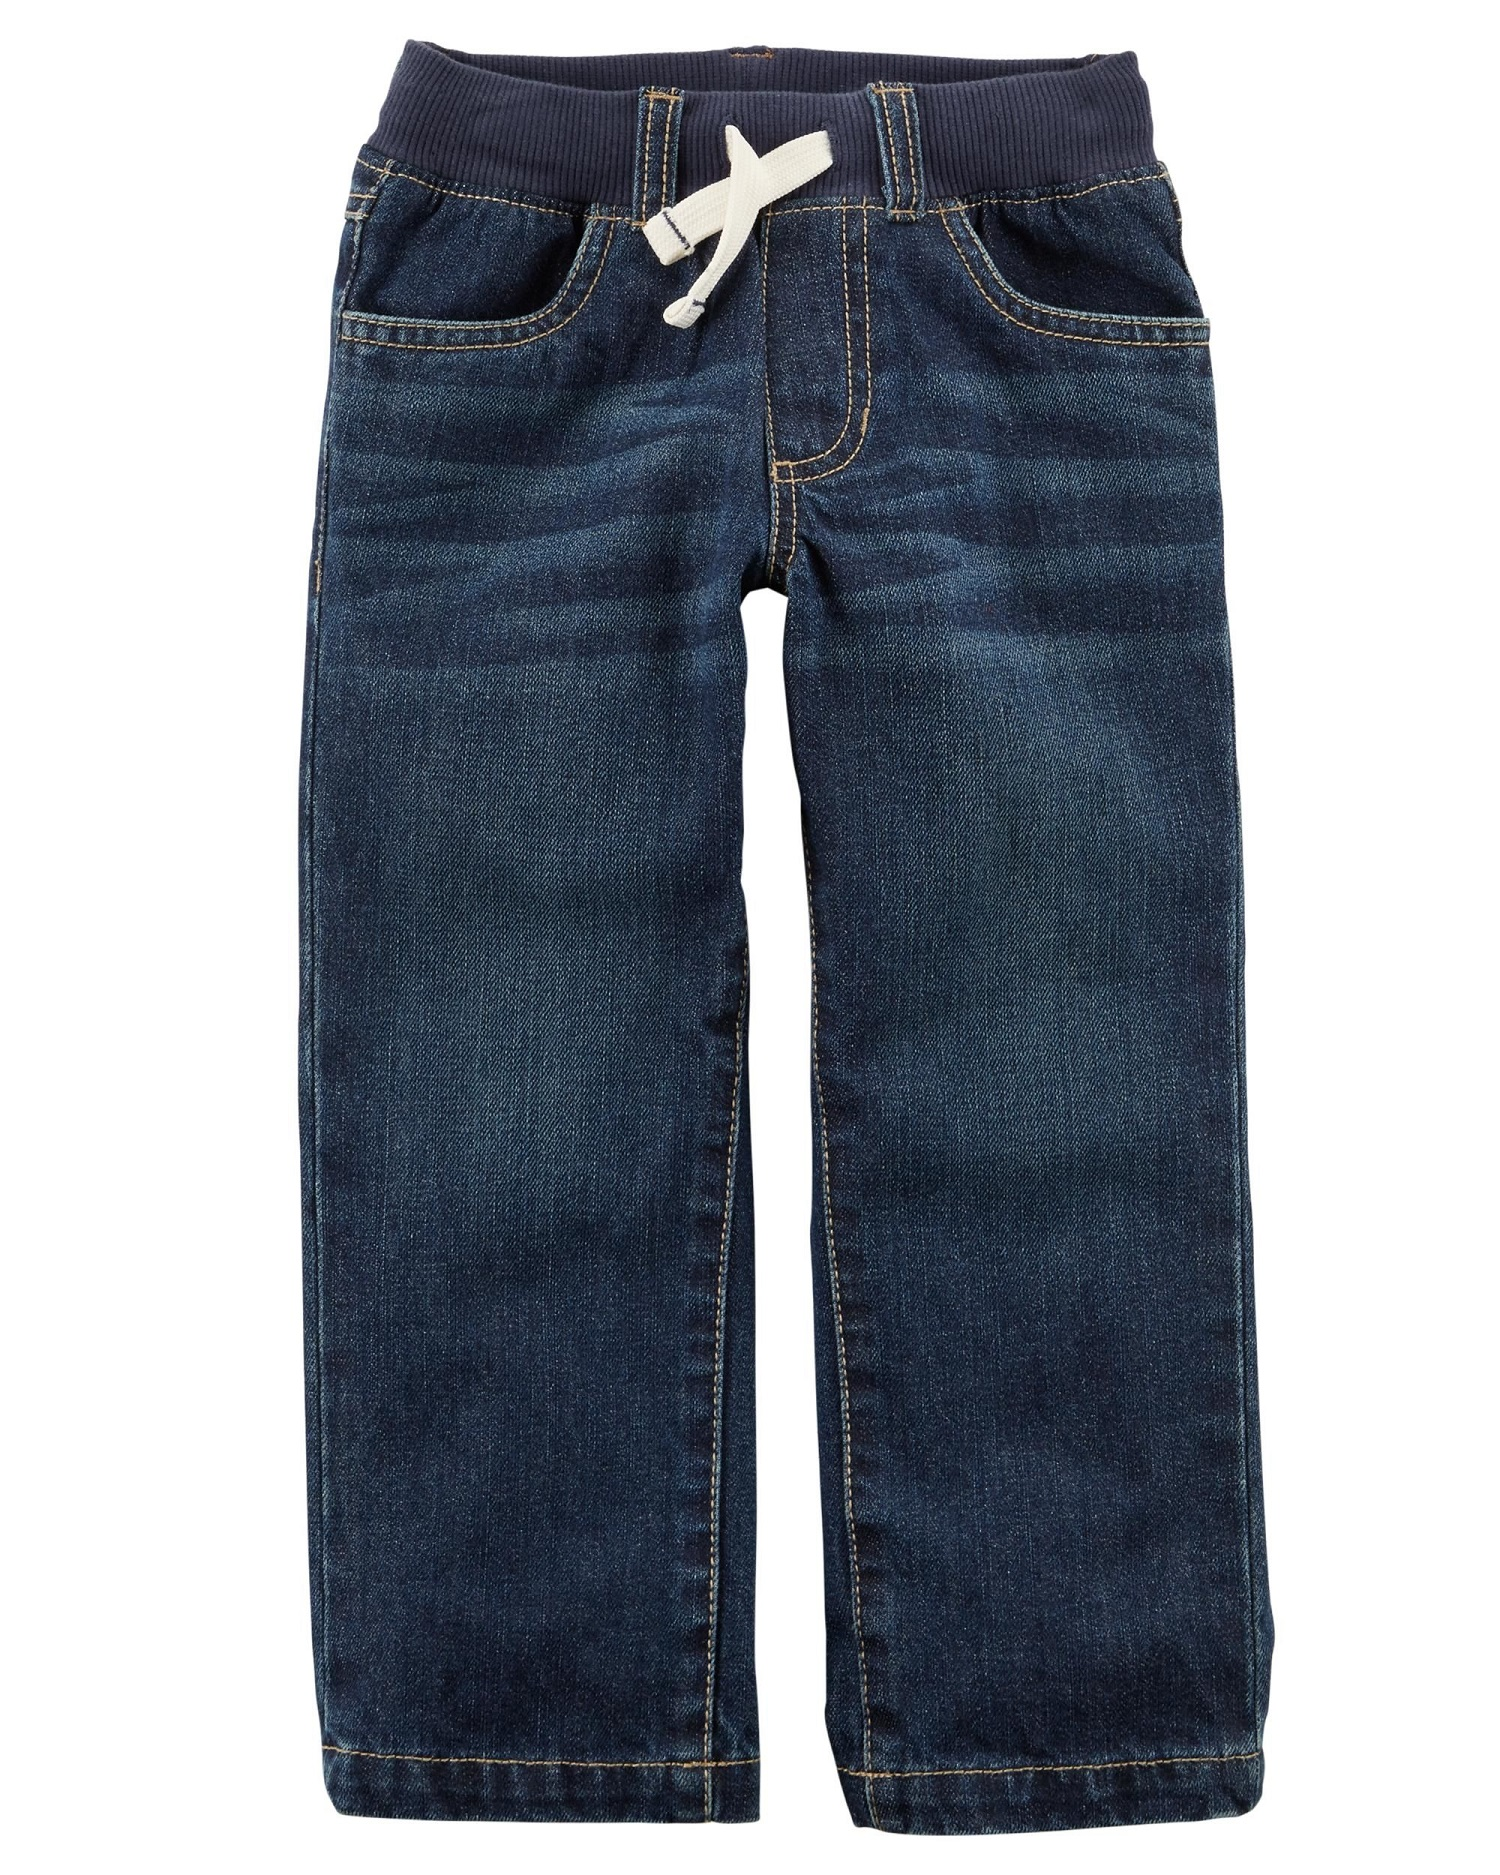 Carter's Baby Boys' Pull-On Jeans, Navy, 3 Months